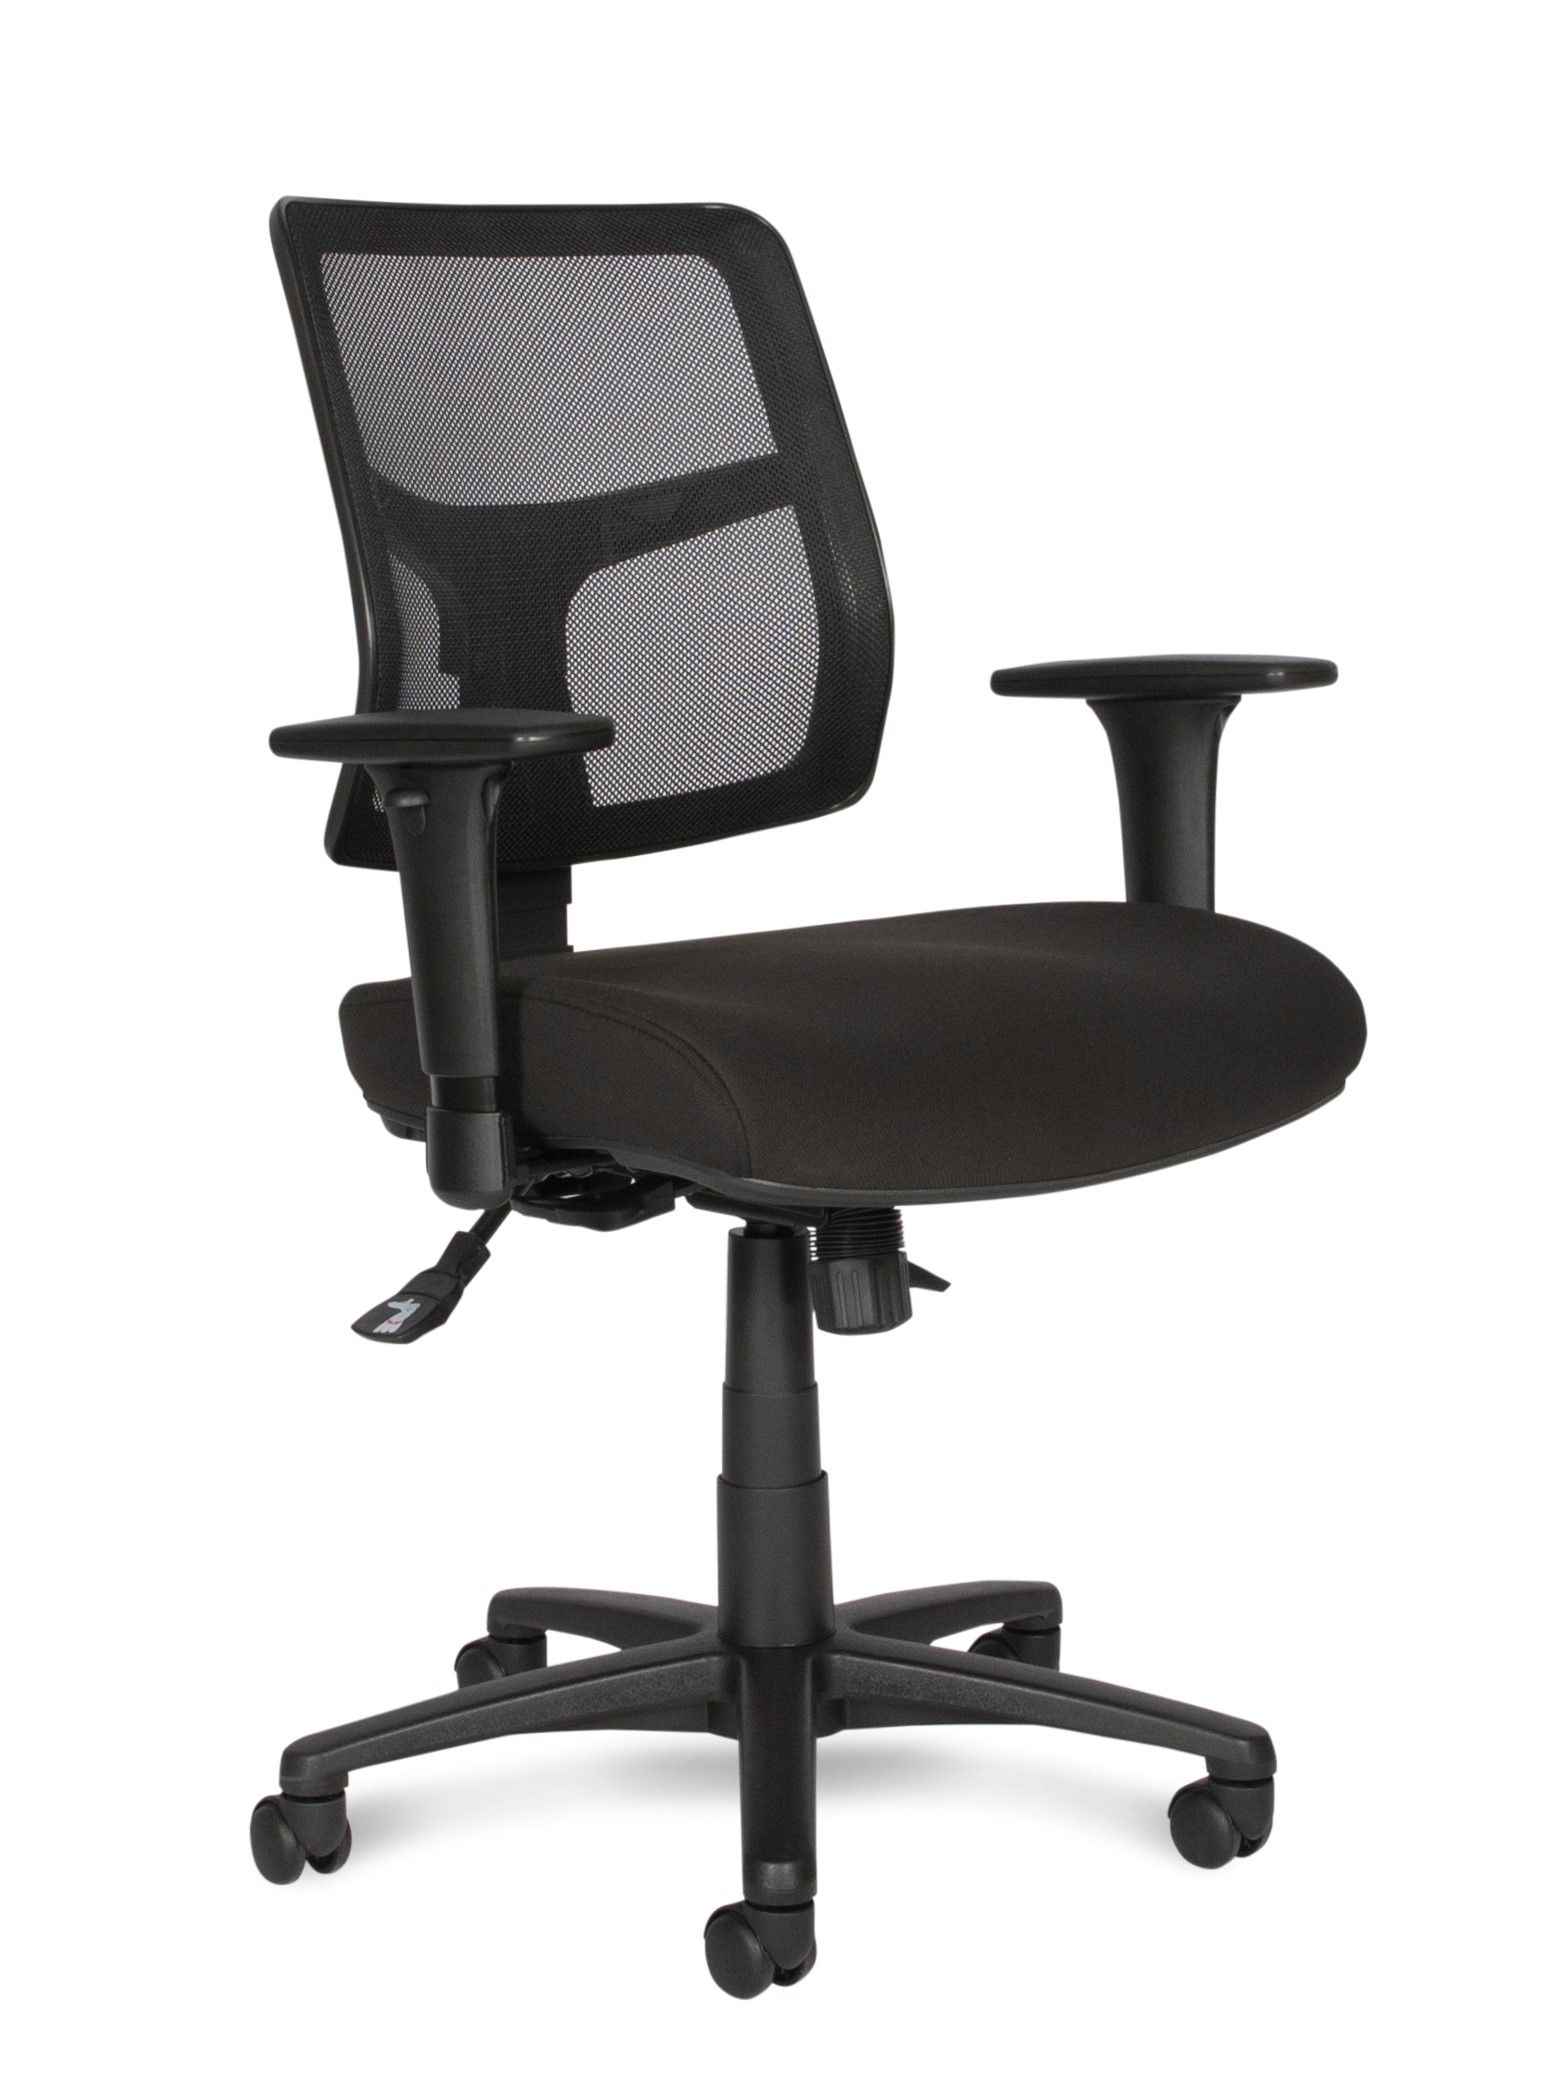 Sway With Black Mesh Fabric Seat And Arms Office Furniture